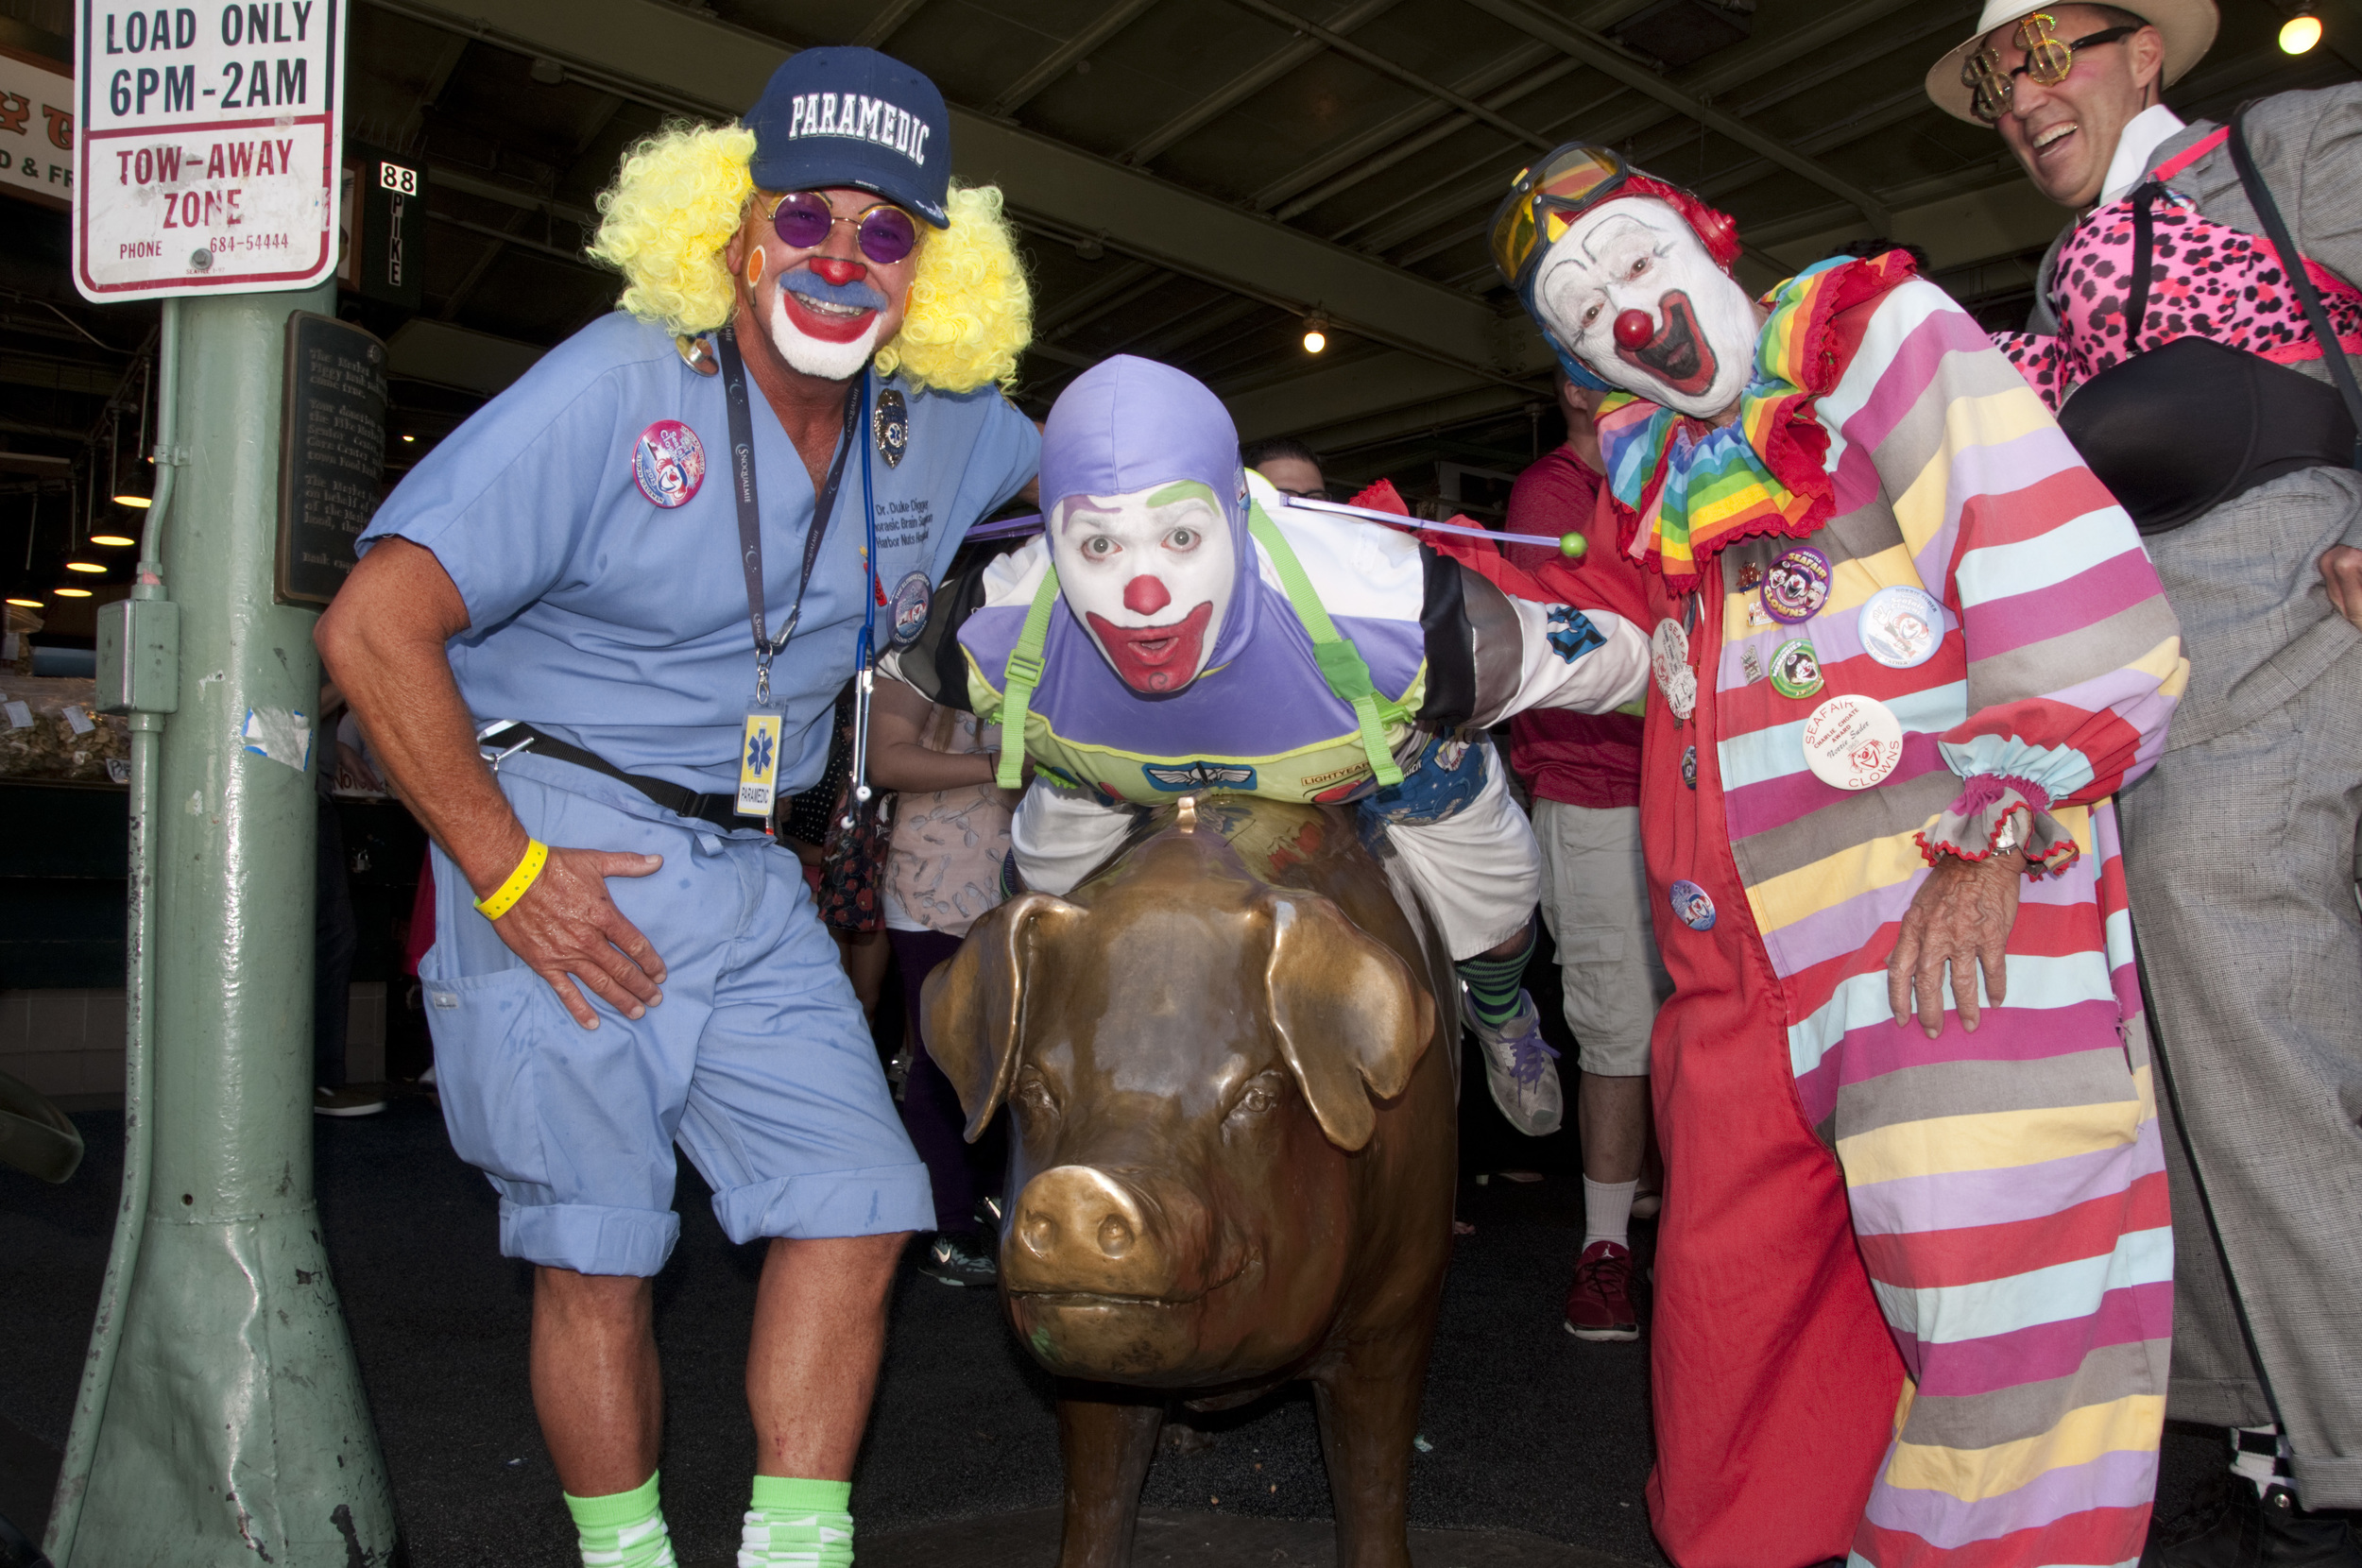 Seafair Clown arrival_7-19-13_5366.jpg